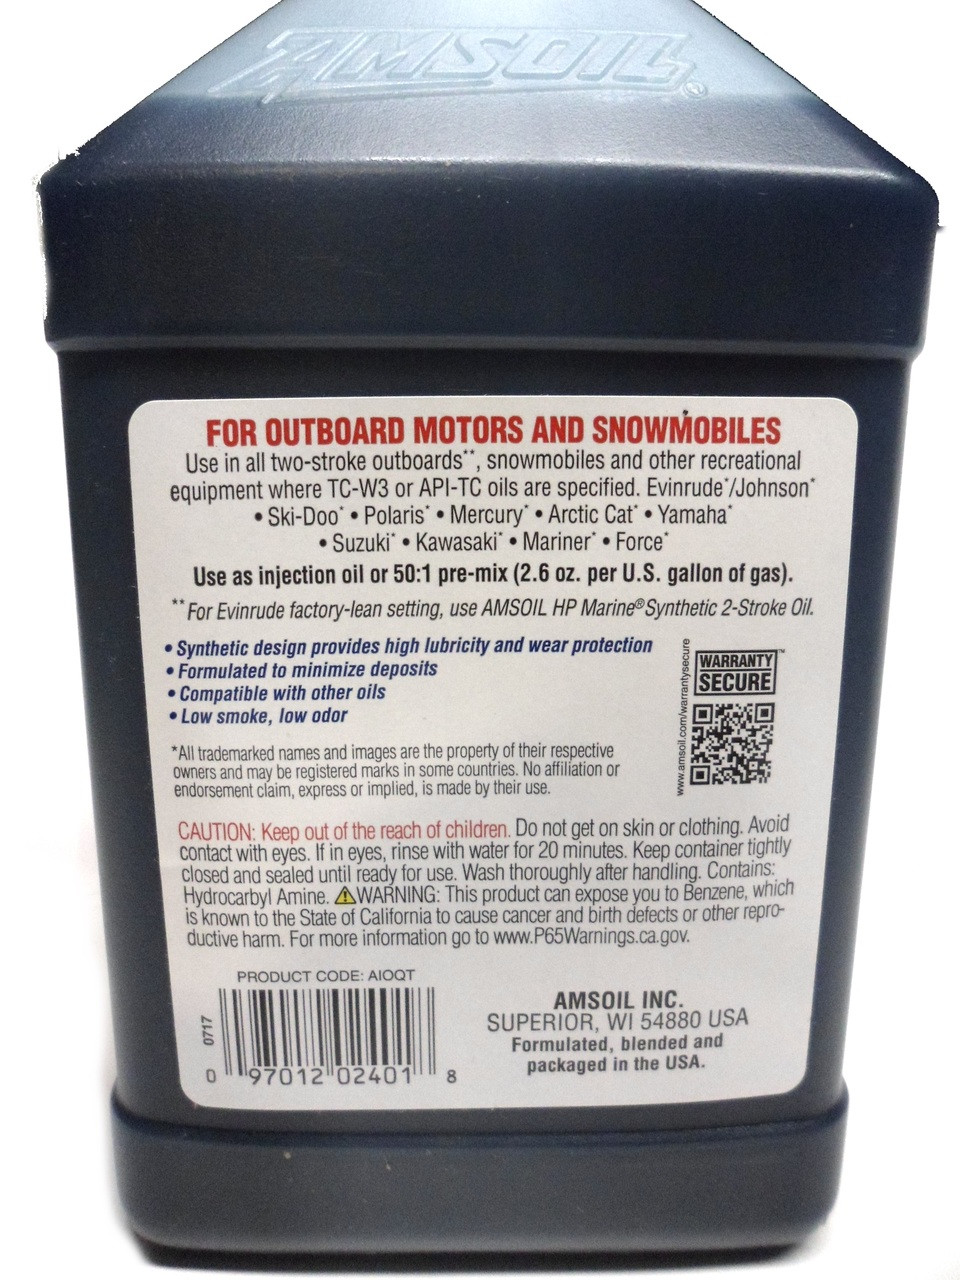 Amsoil Synthetic 2-Stroke Injector Mixing Oil -  1 US Quart